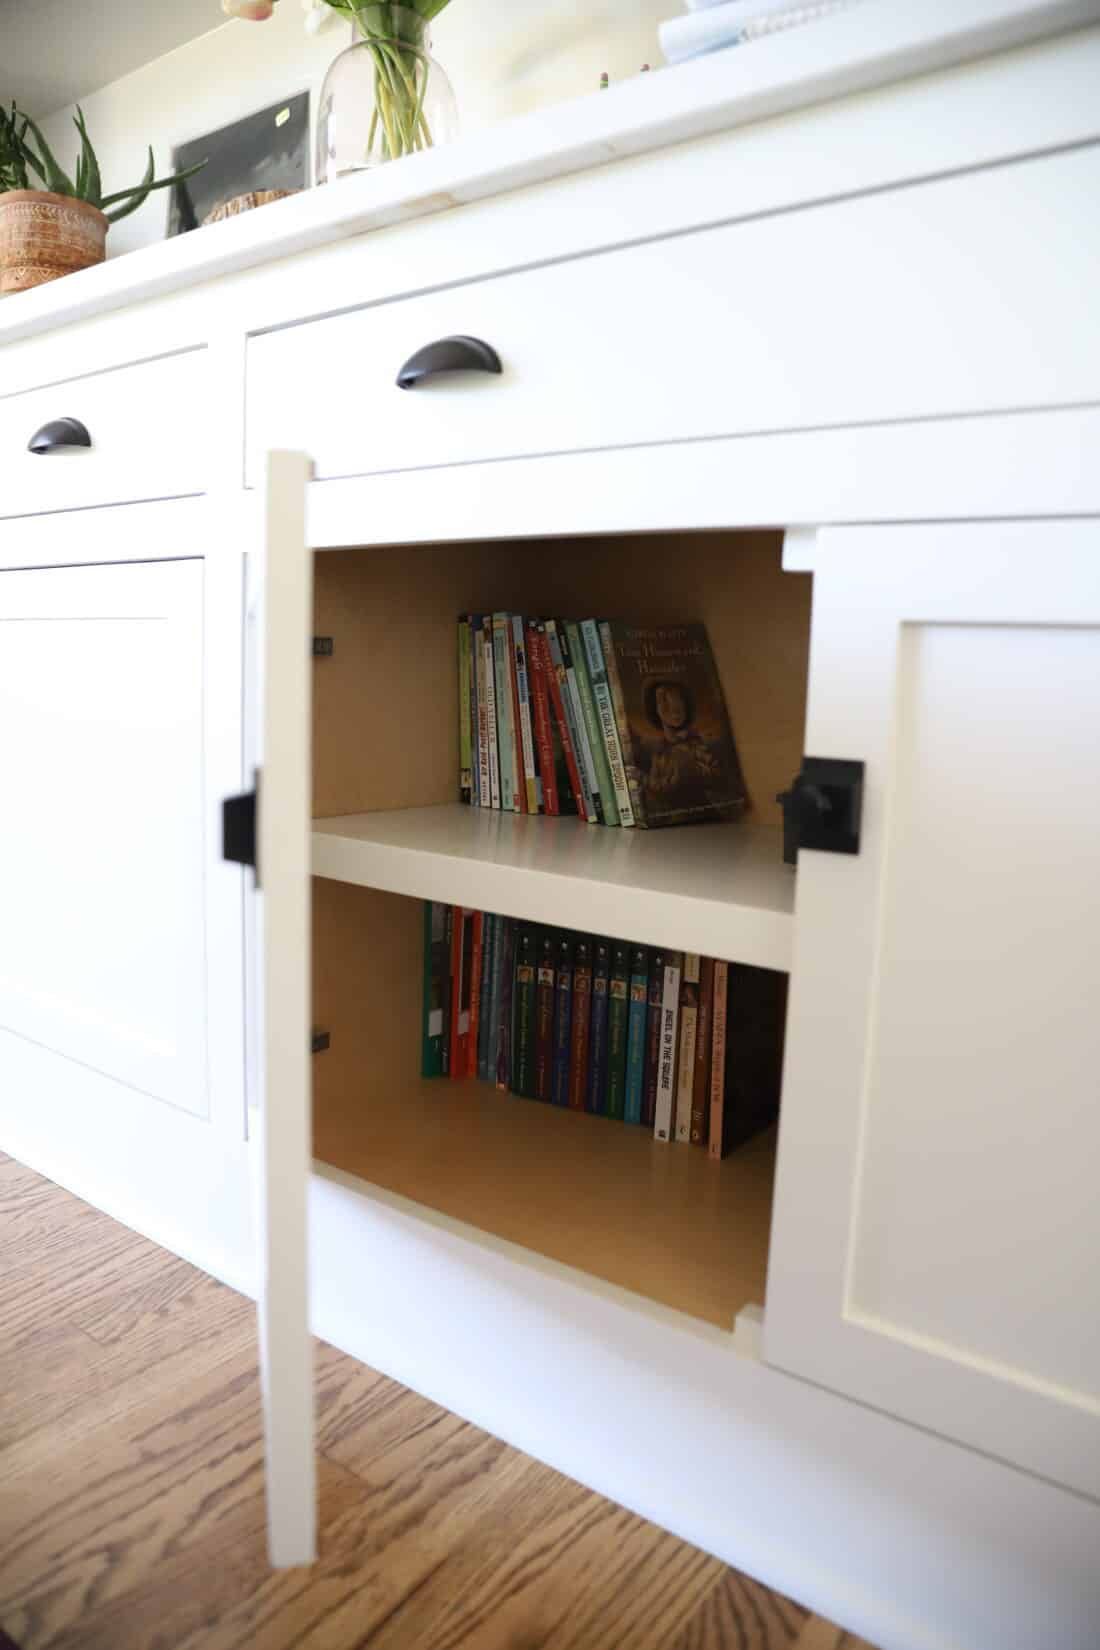 a cabinet full of living books for kids to read